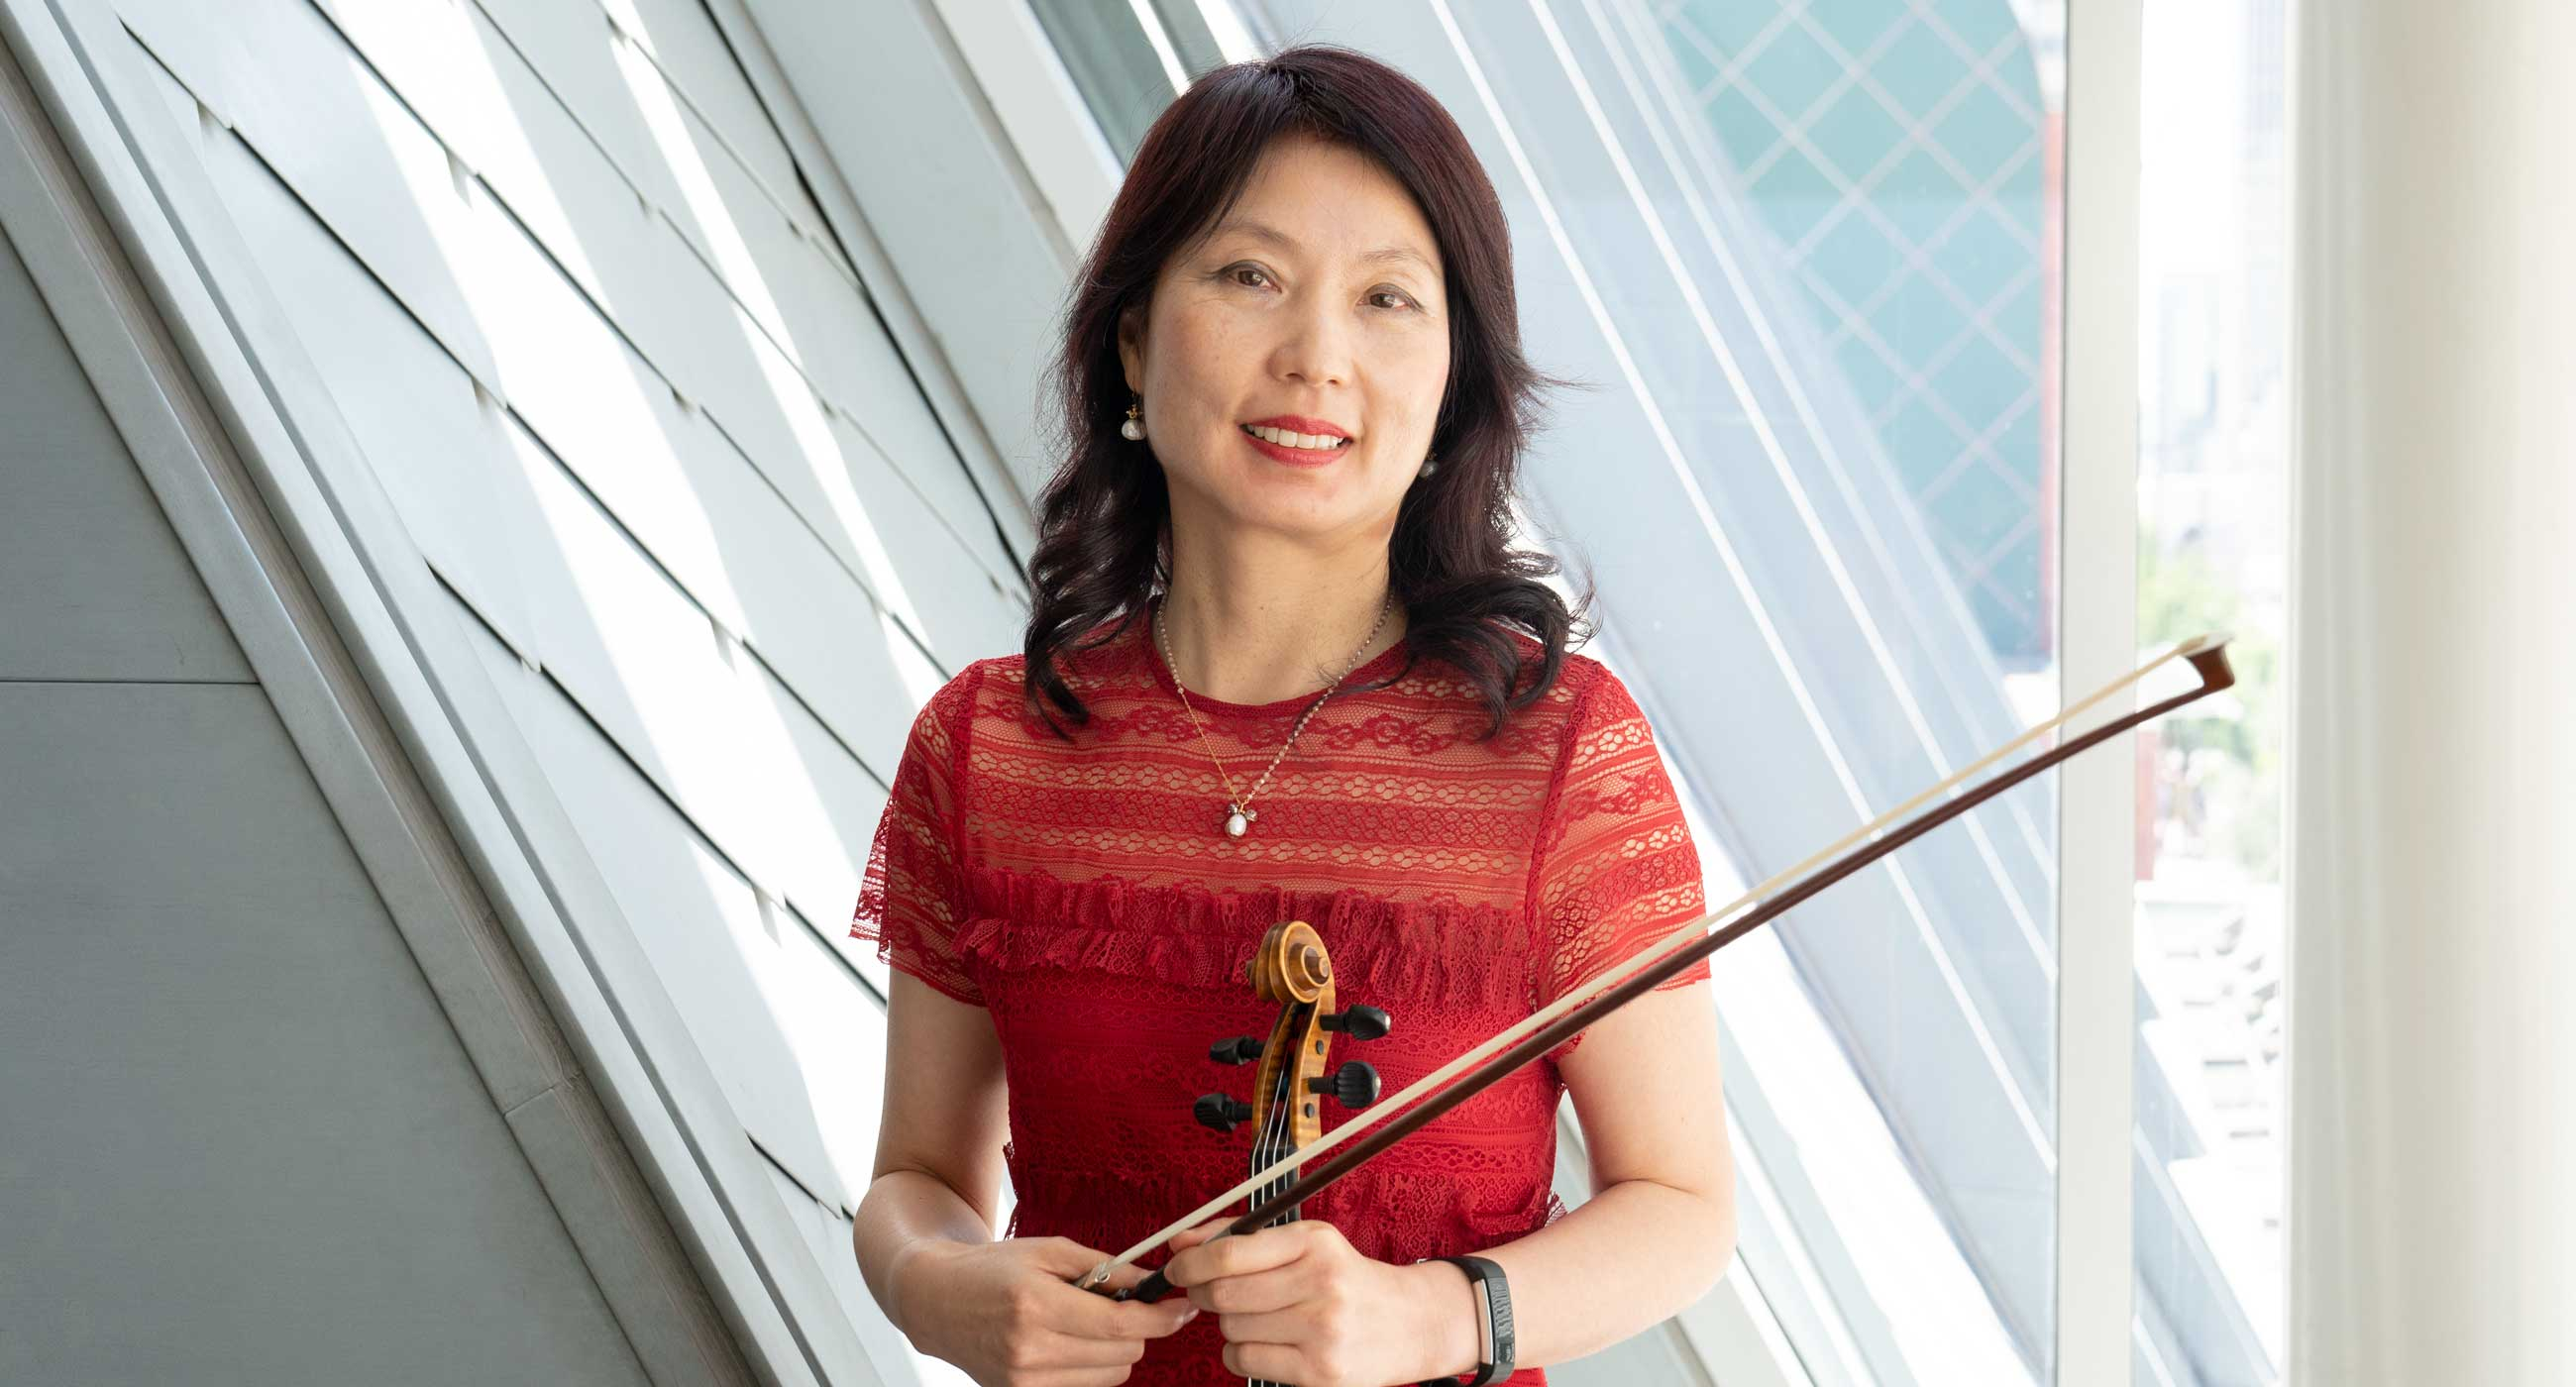 Shih Lan Liu holding a violin and smiling in front of a window.